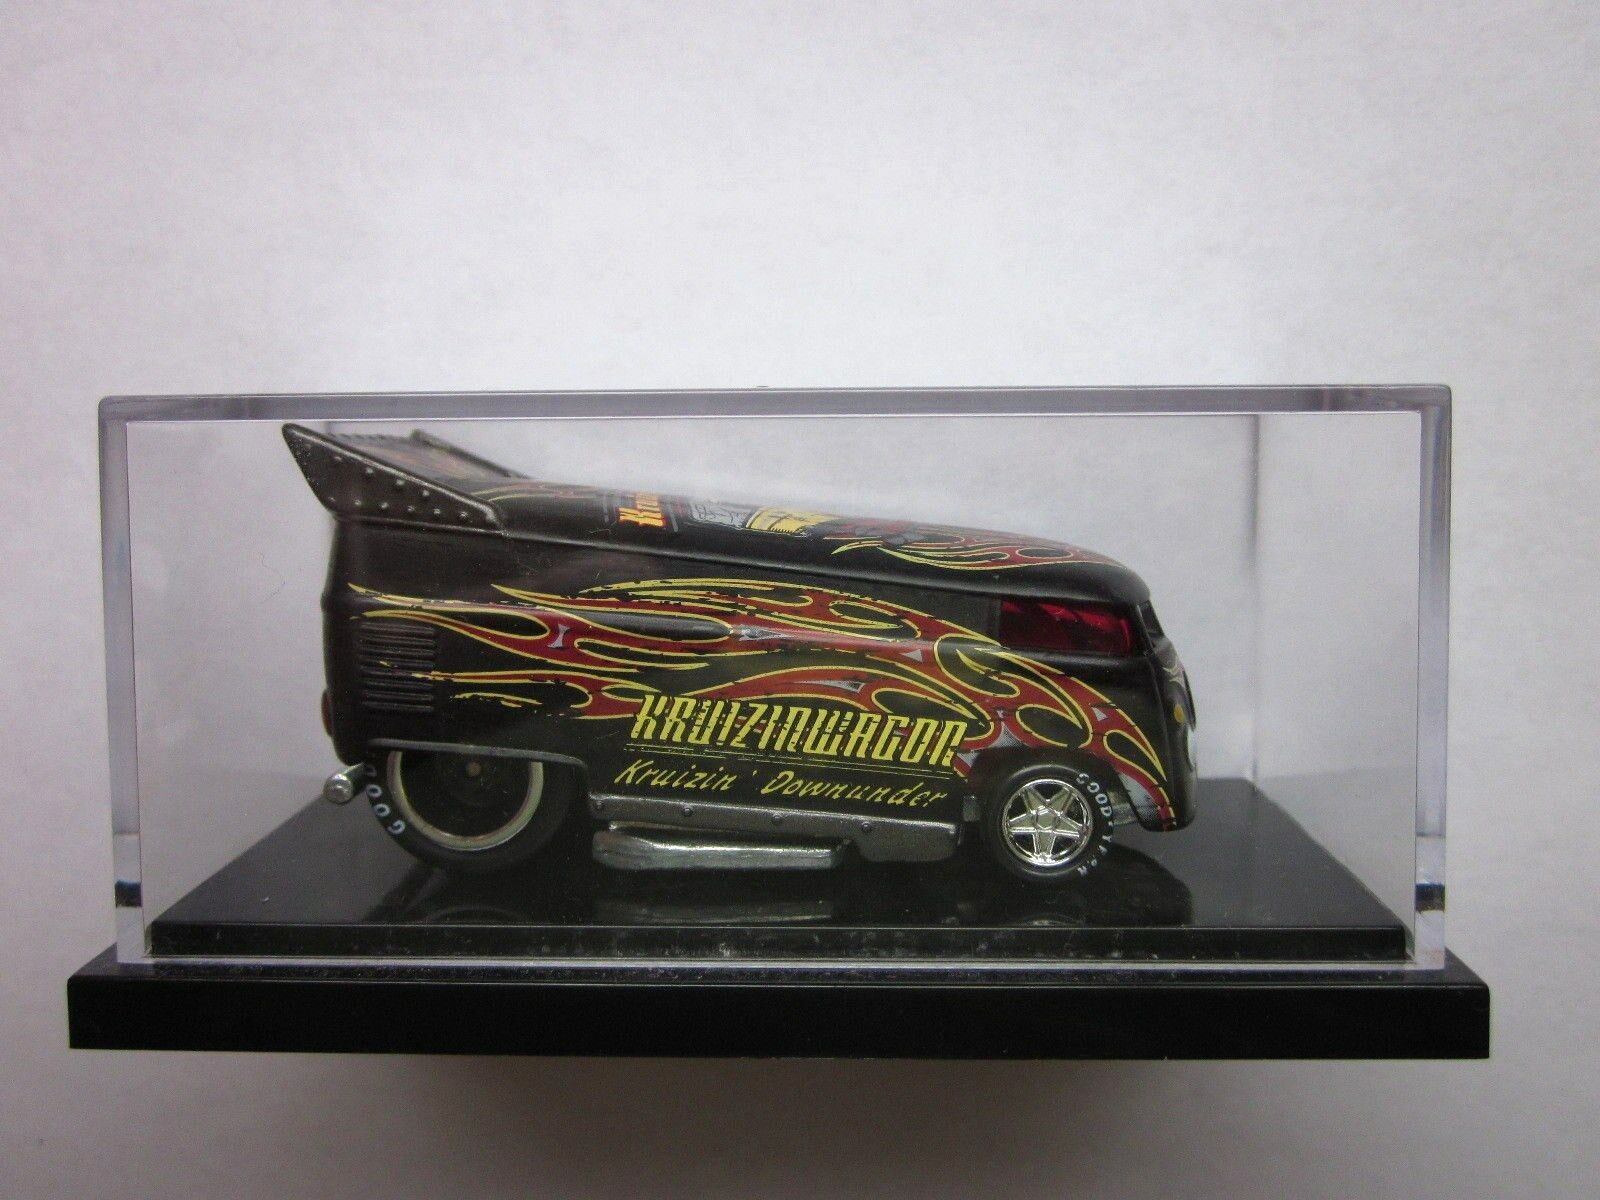 Hot Wheels Liberty promociones-kruizinwagon 2 nero Vw Drag Bus - 94 de 900